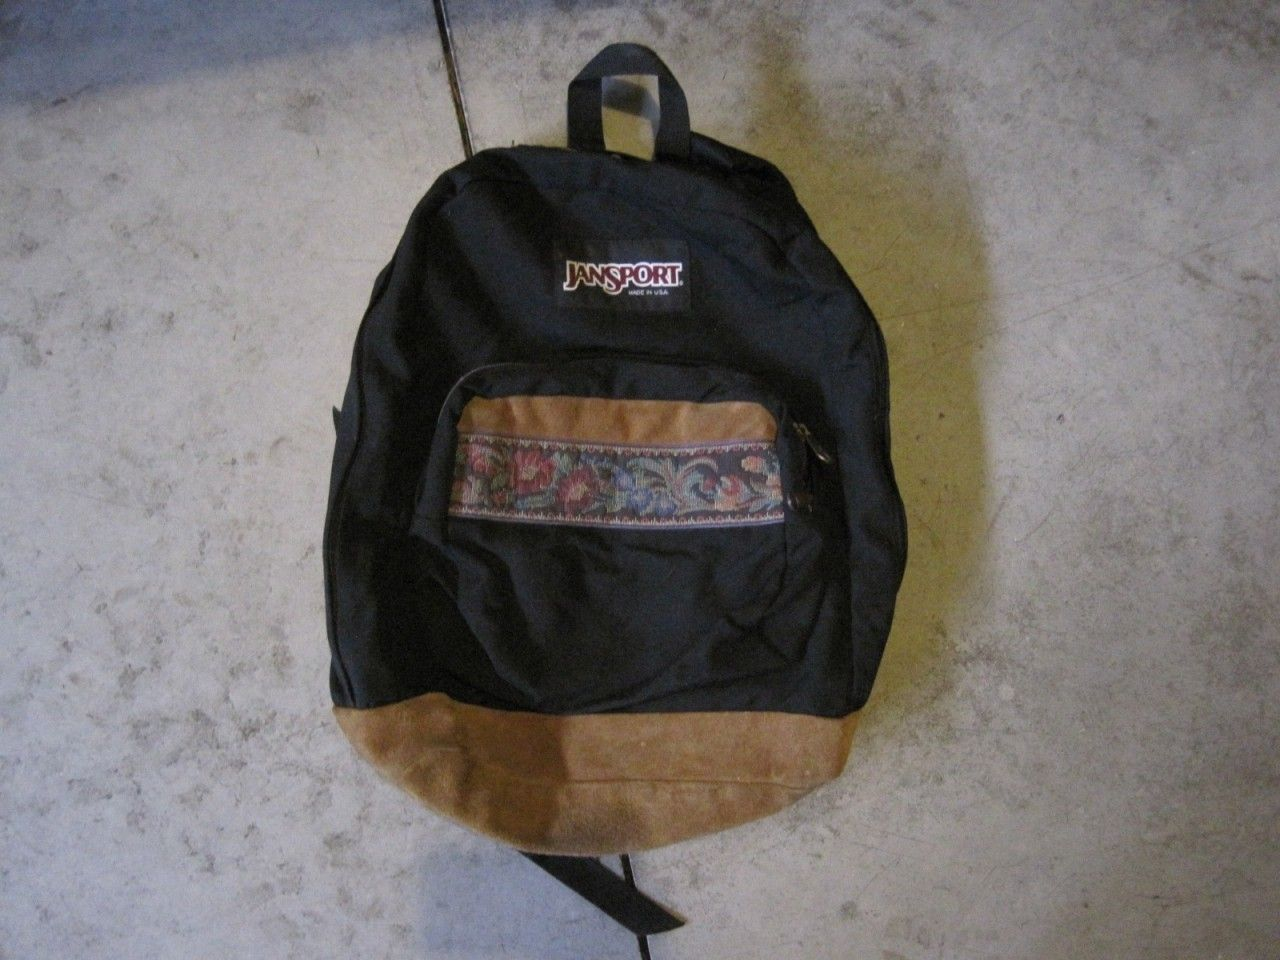 Vintage 1990's Jansport Backpack Floral Patch Suede Leather Bottom ...